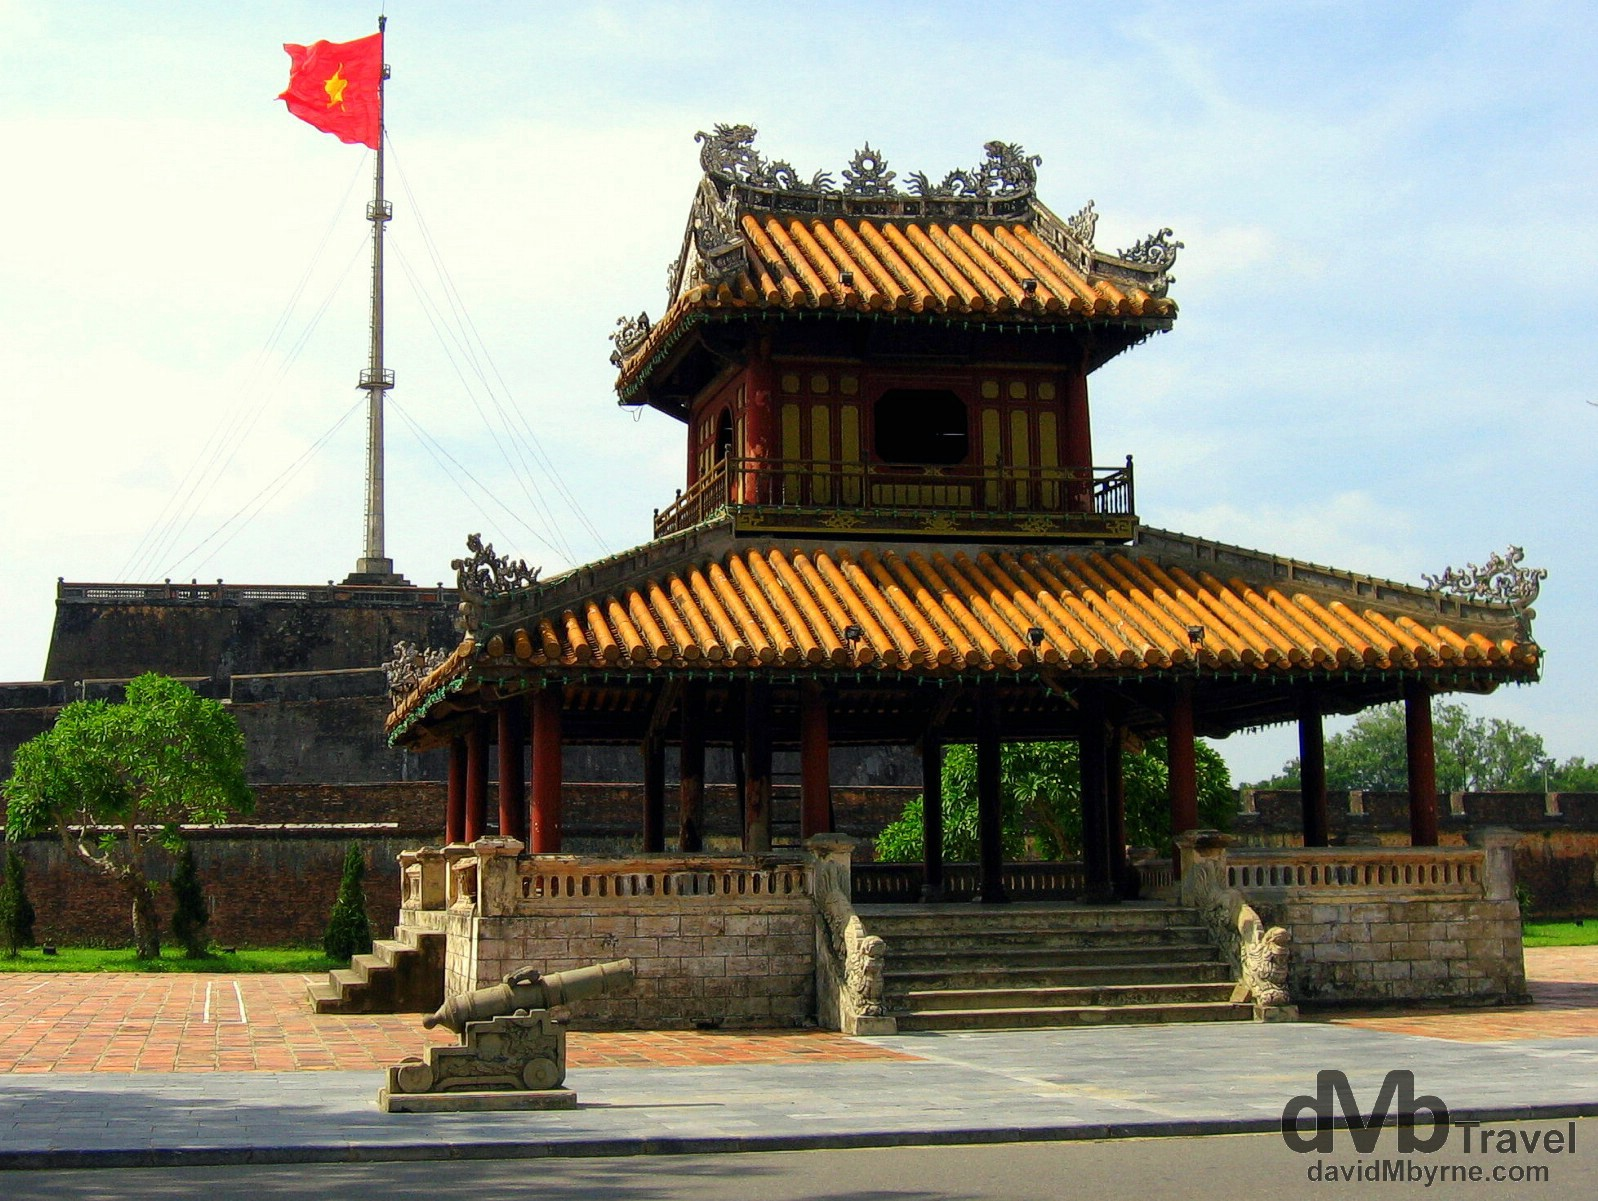 Fronting the UNESCO-listed Citadel in Hue, central Vietnam. September 7th, 2005.